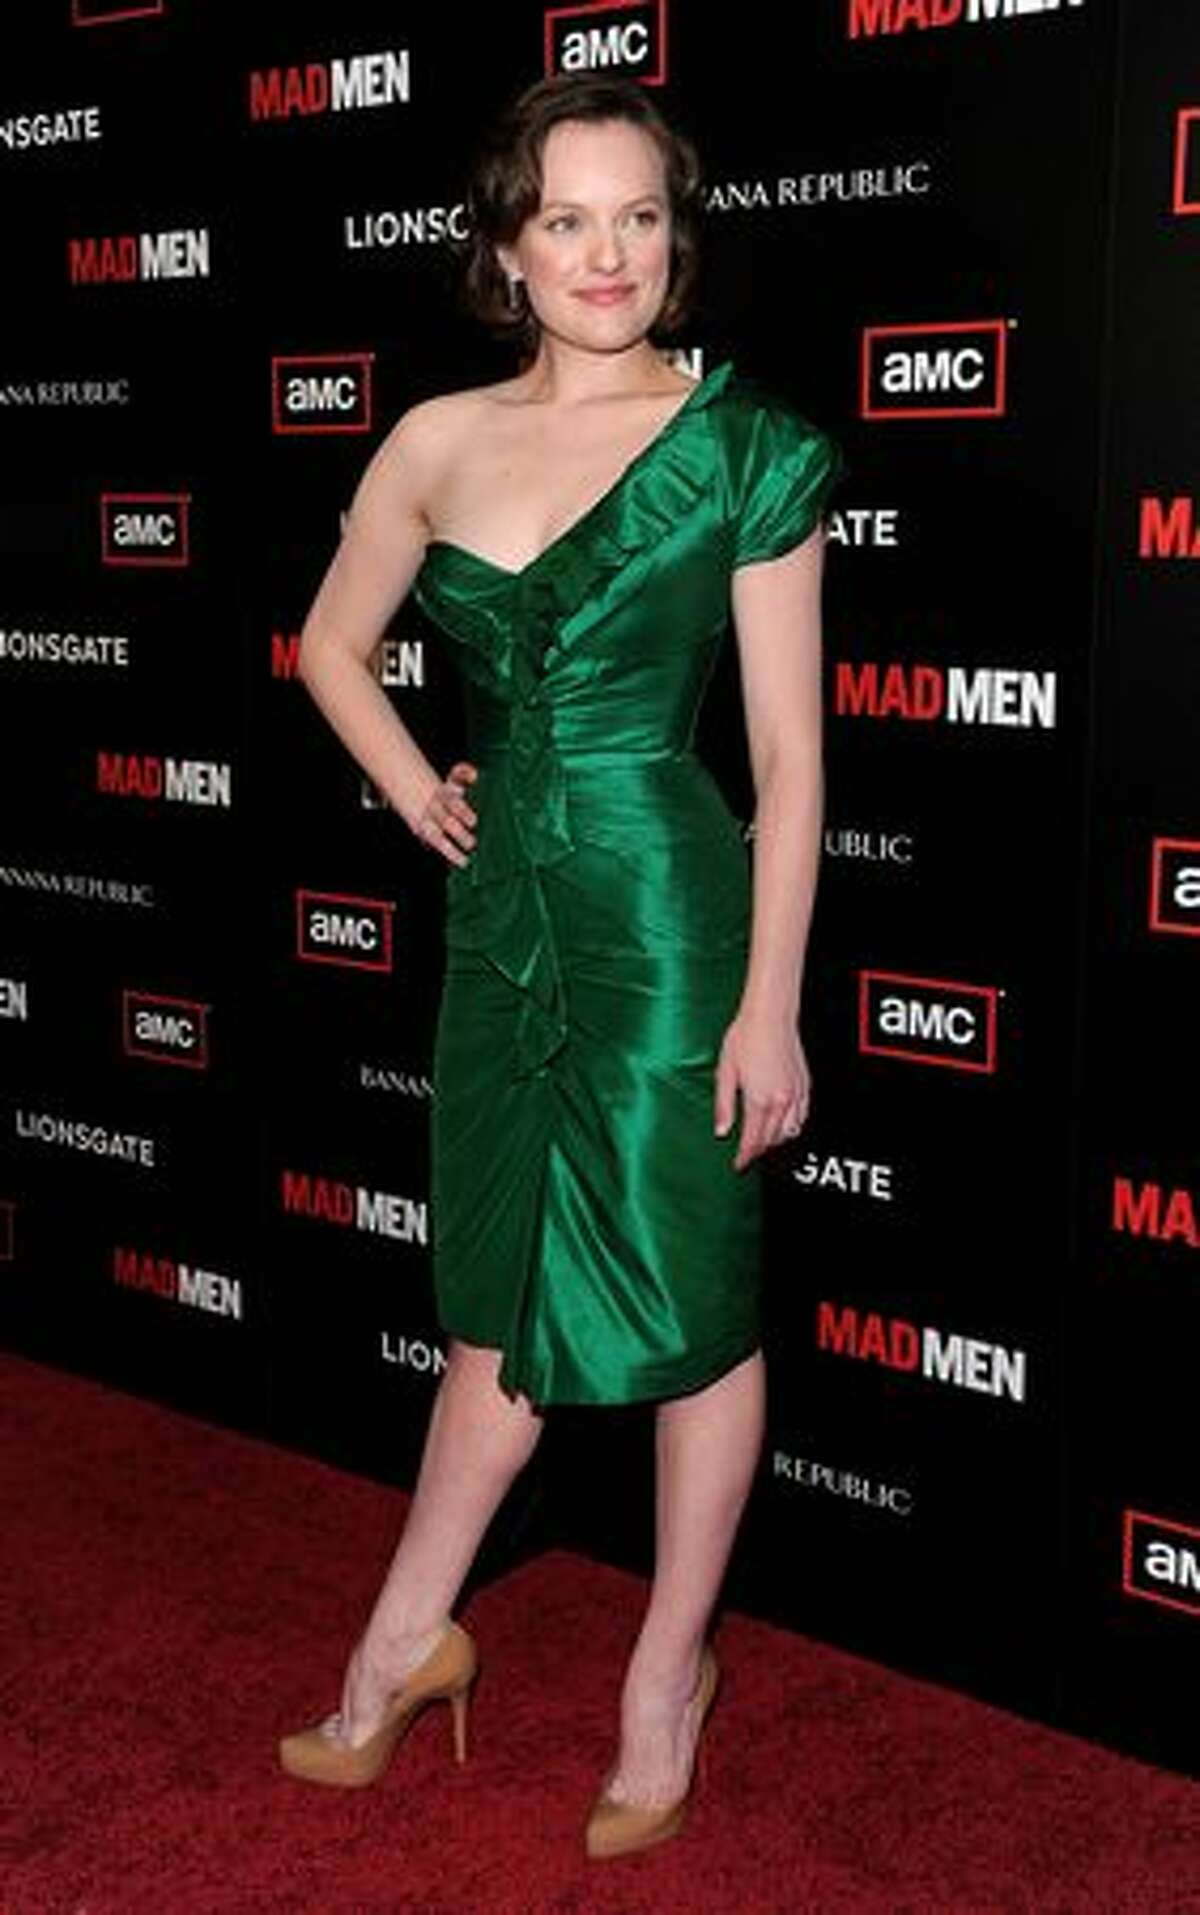 Actress Elisabeth Moss, who plays Peggy Olson on